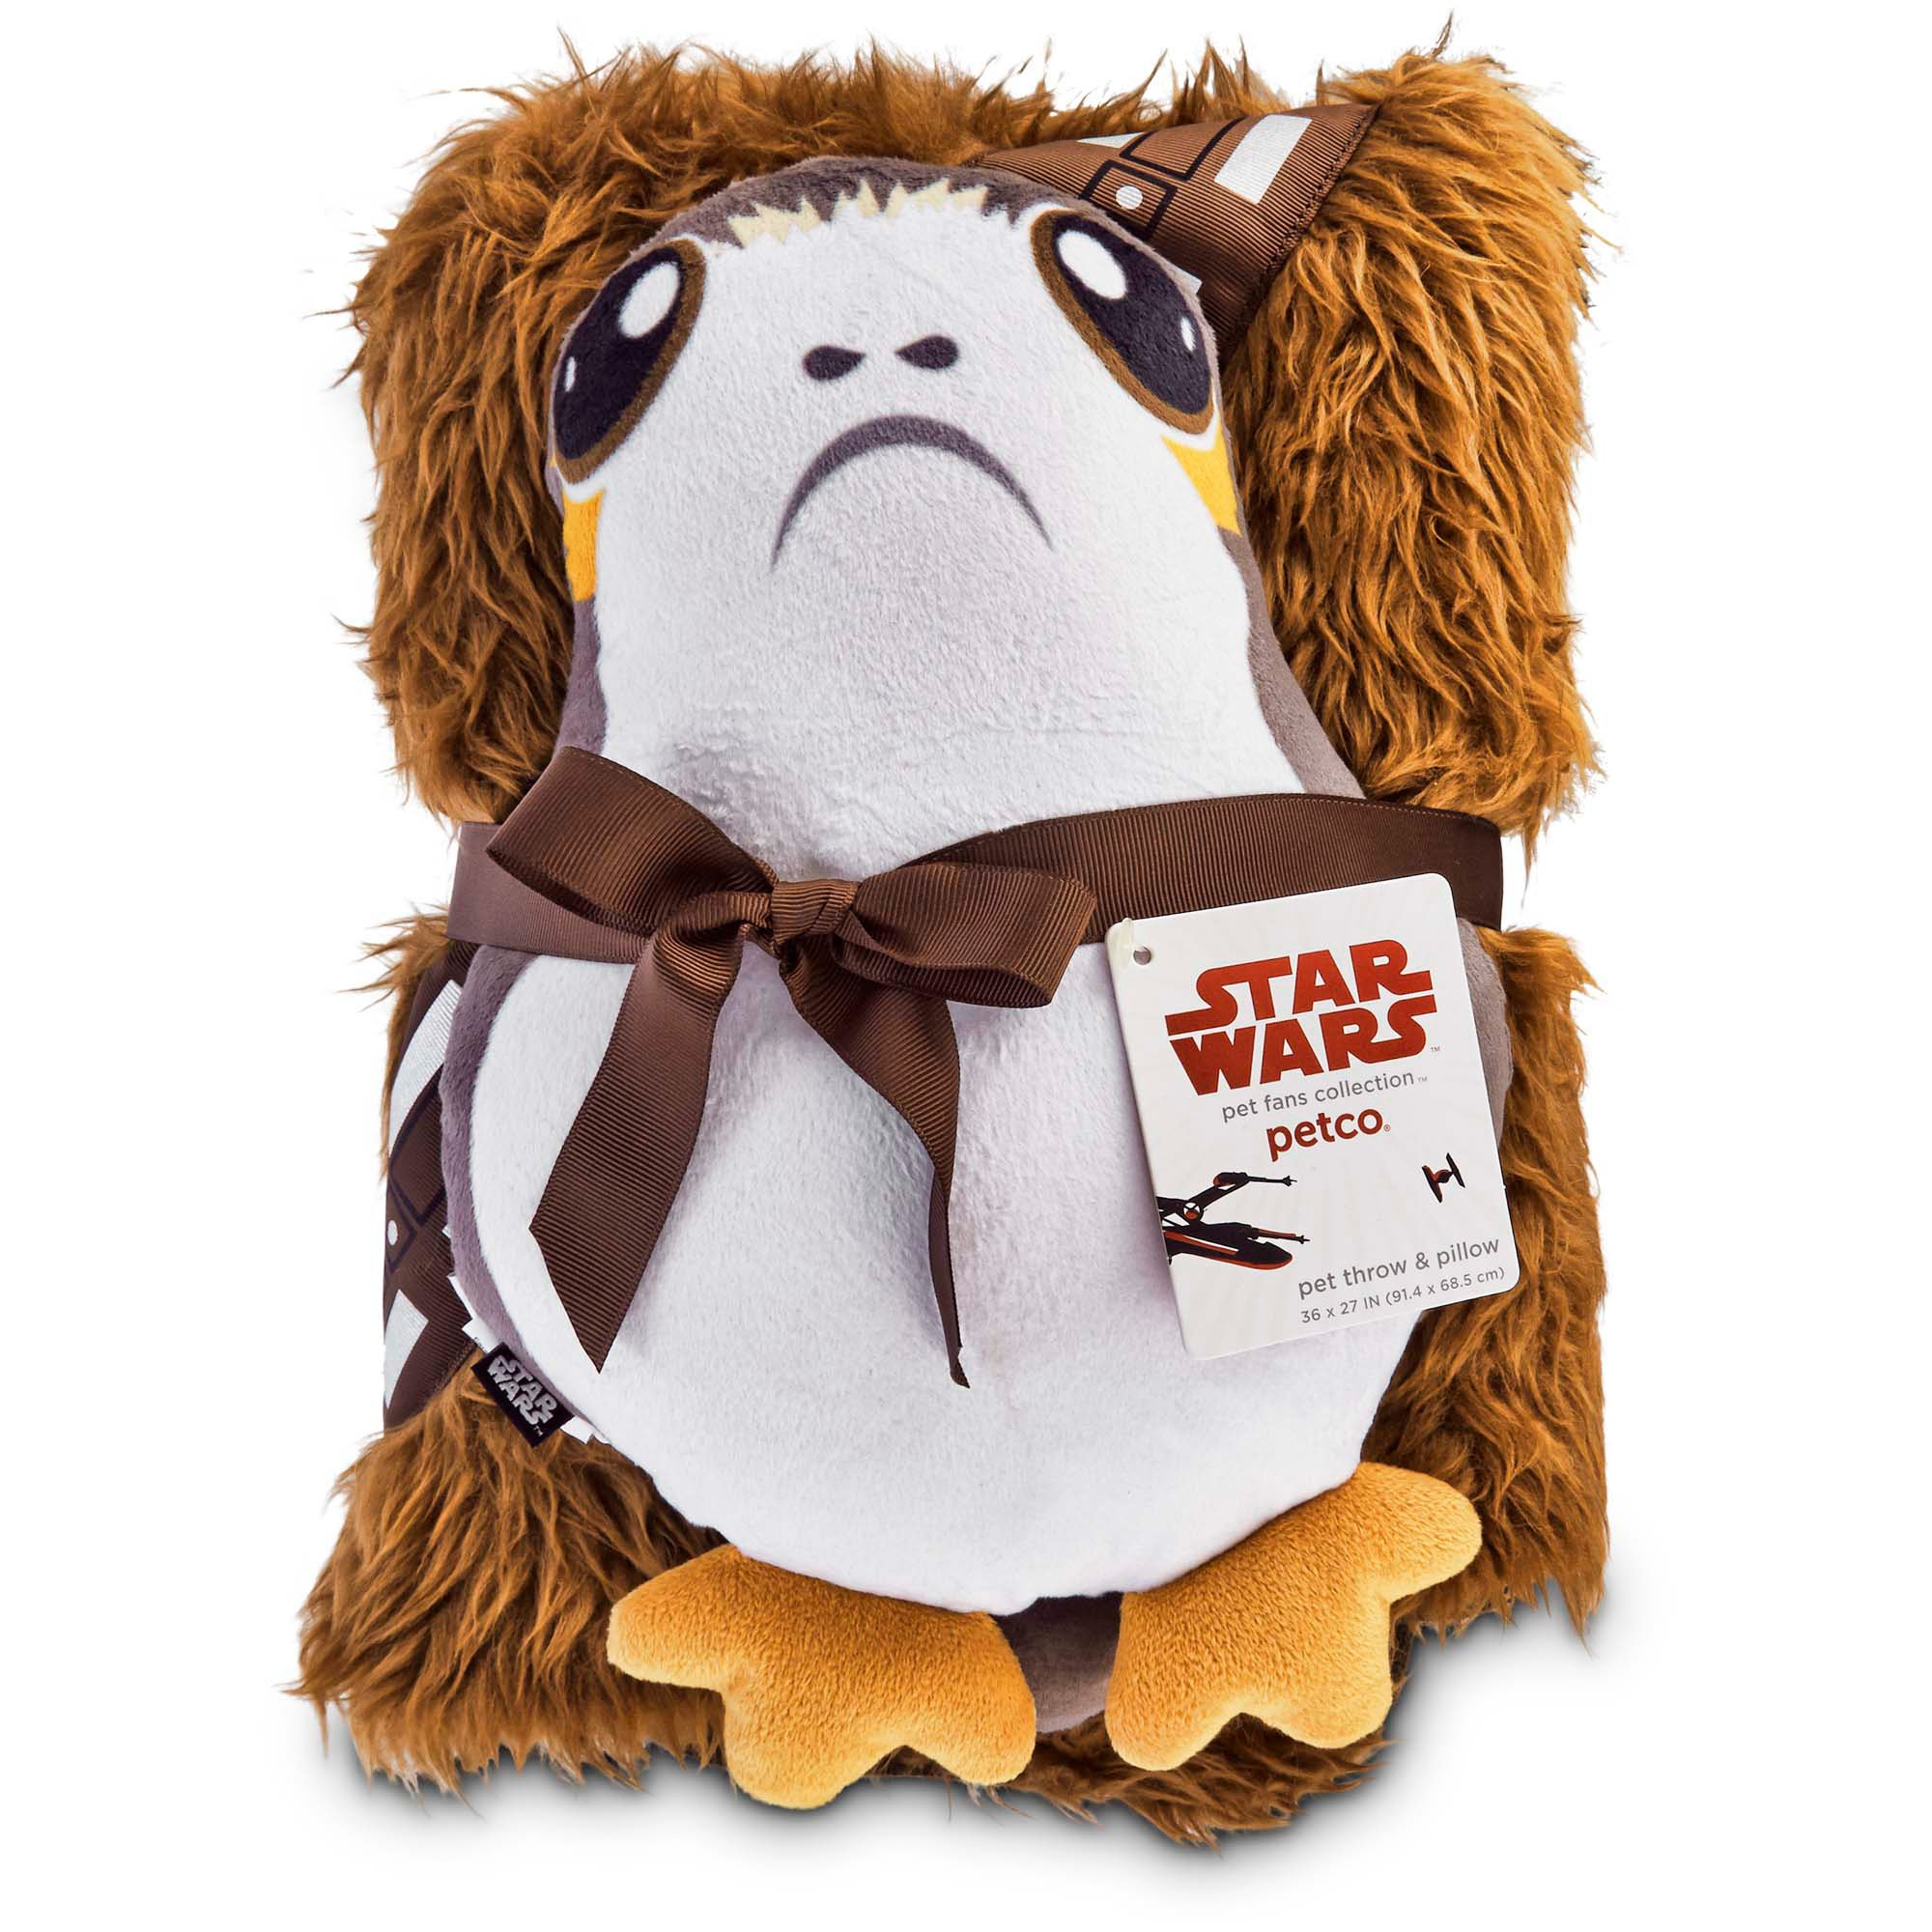 Star Wars Chewbacca Throw and Porg Pillow for Dogs | Petco